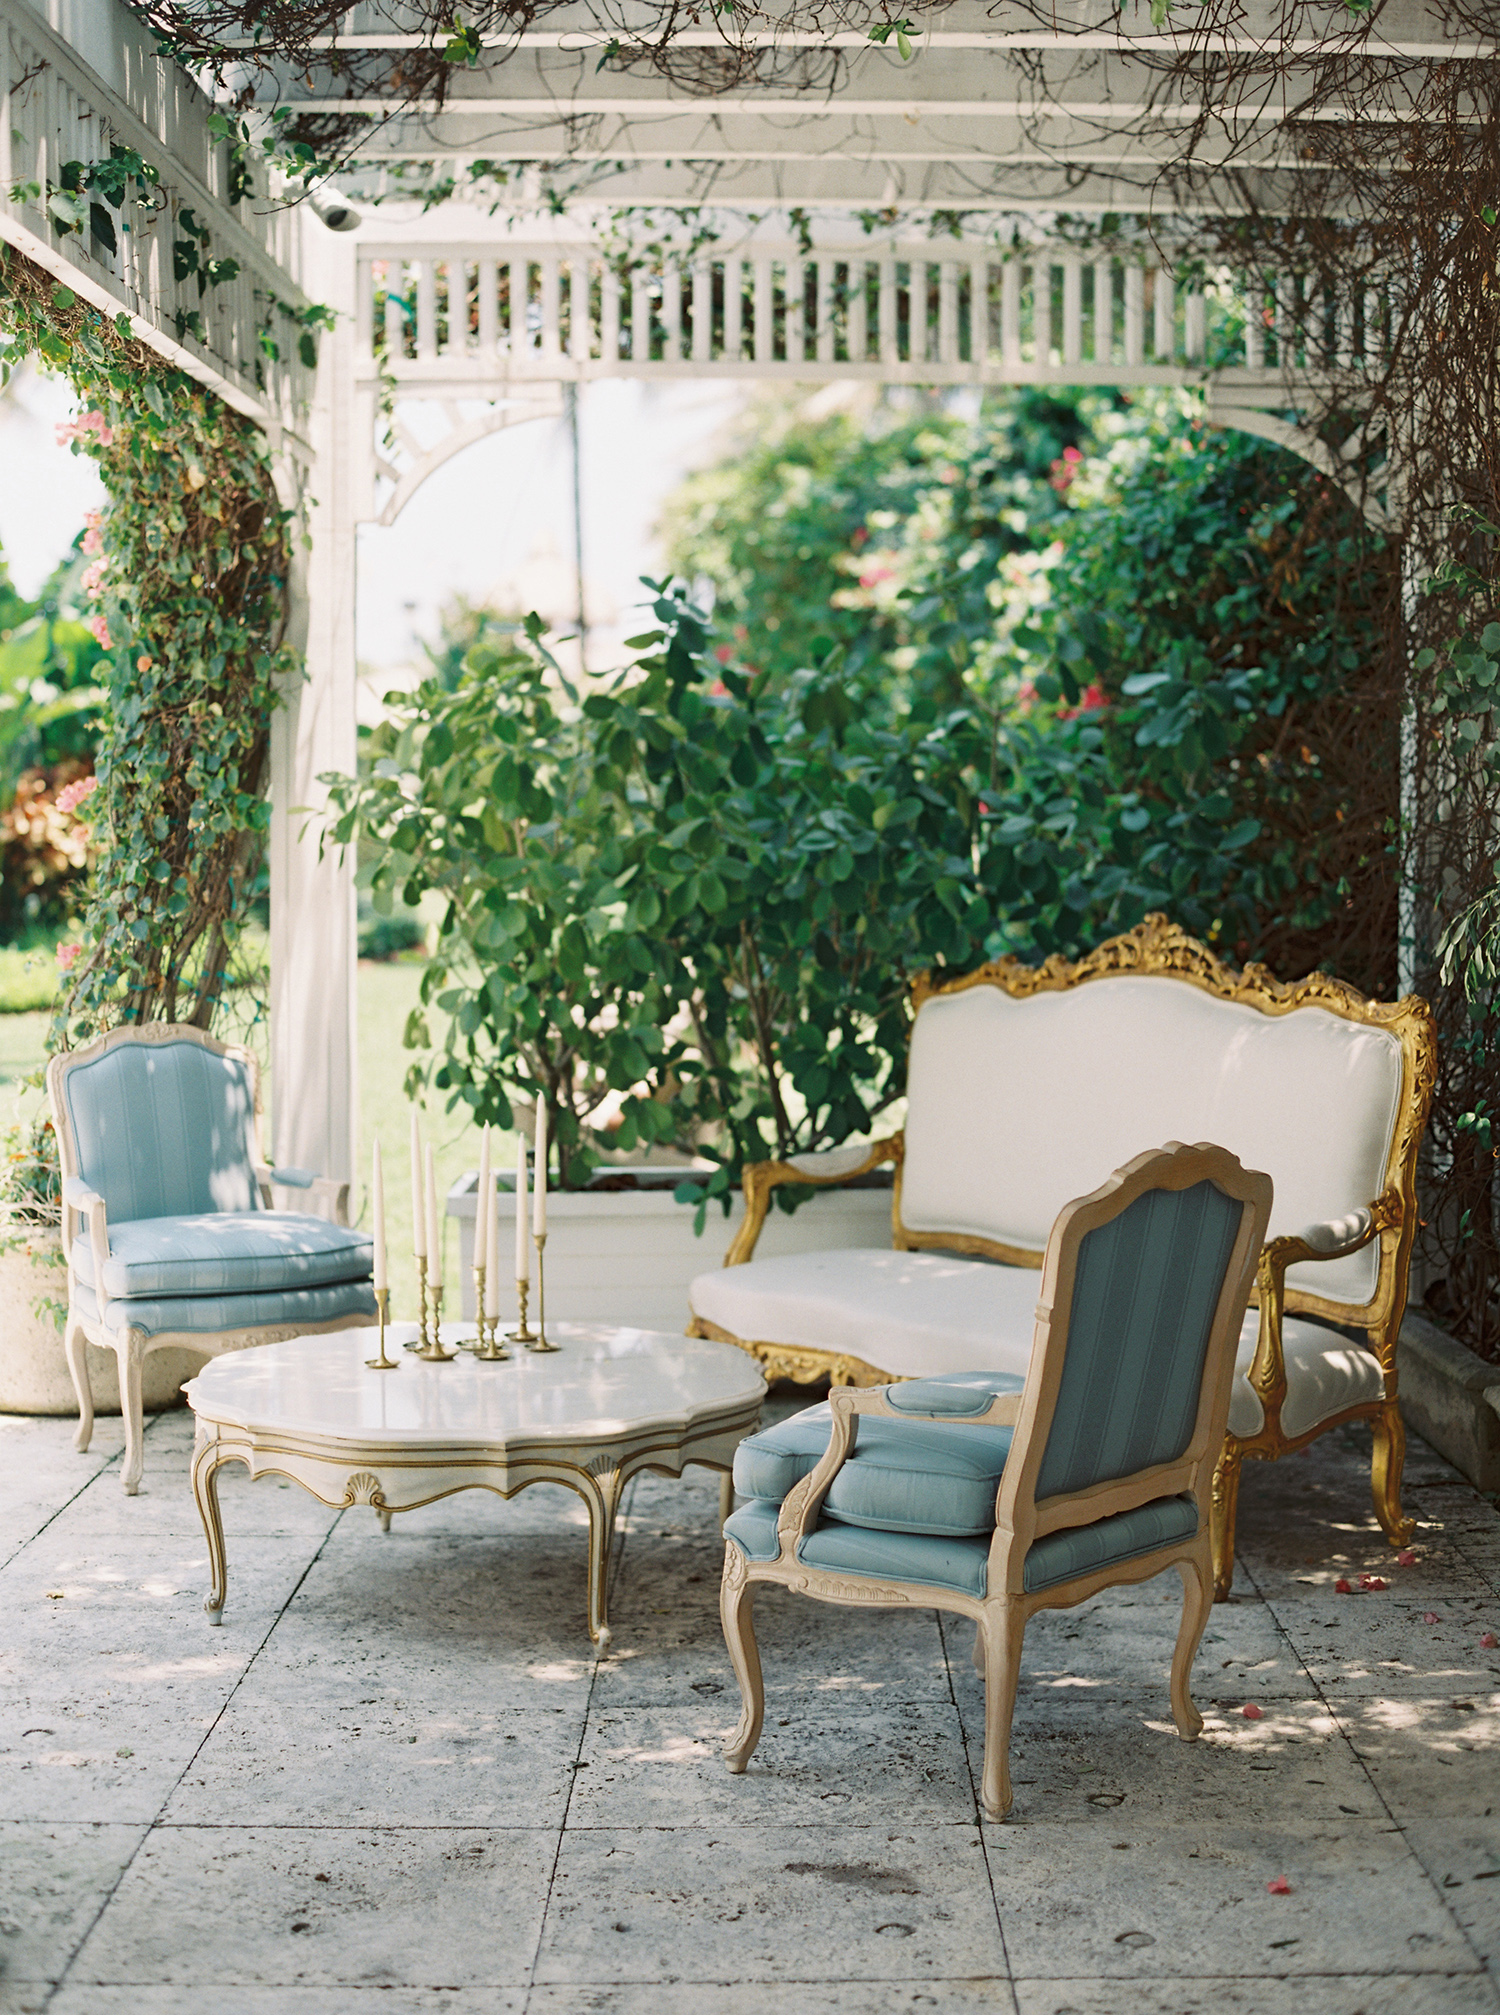 wedding lounge victorian chairs, couch, and table outdoor